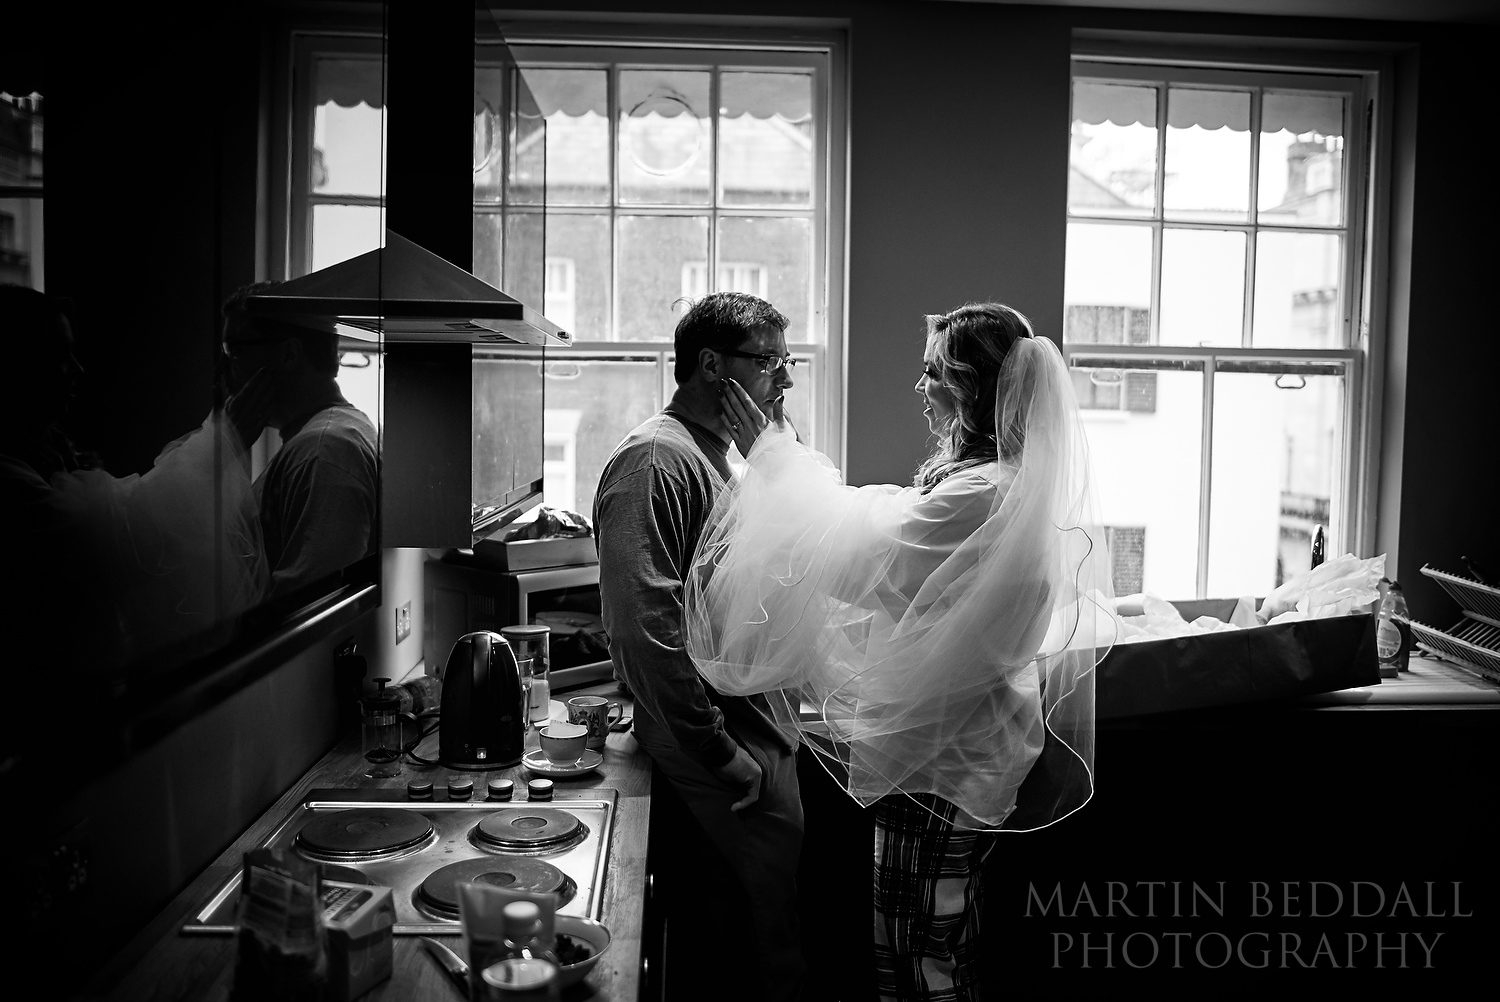 A reportage moment between a bride and her father